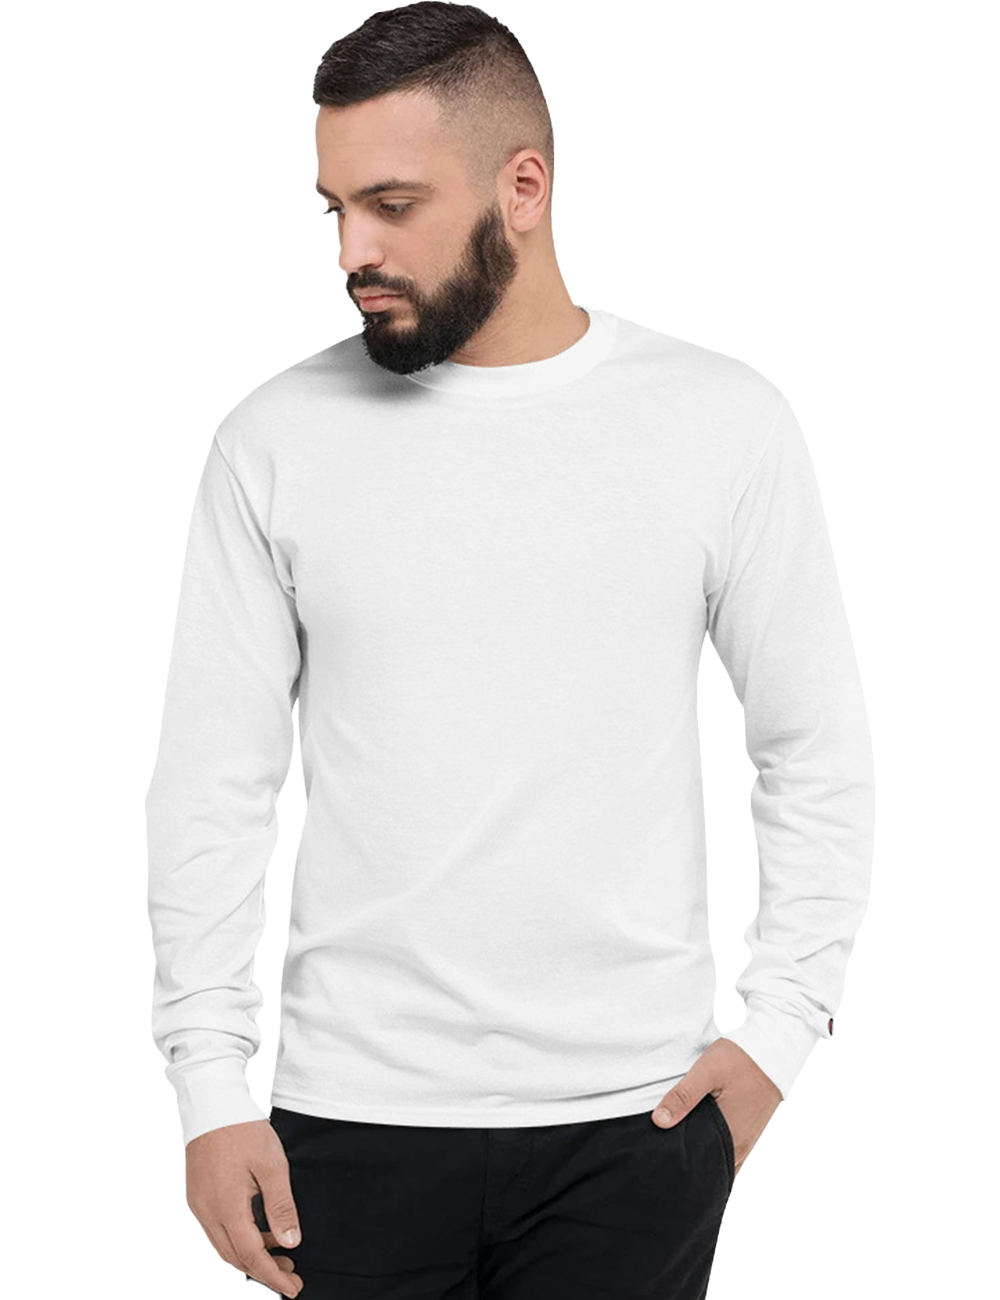 Champion Relaxed Business Style Long Sleeve Shirt - Mercating | Business solutions to achieve more with less